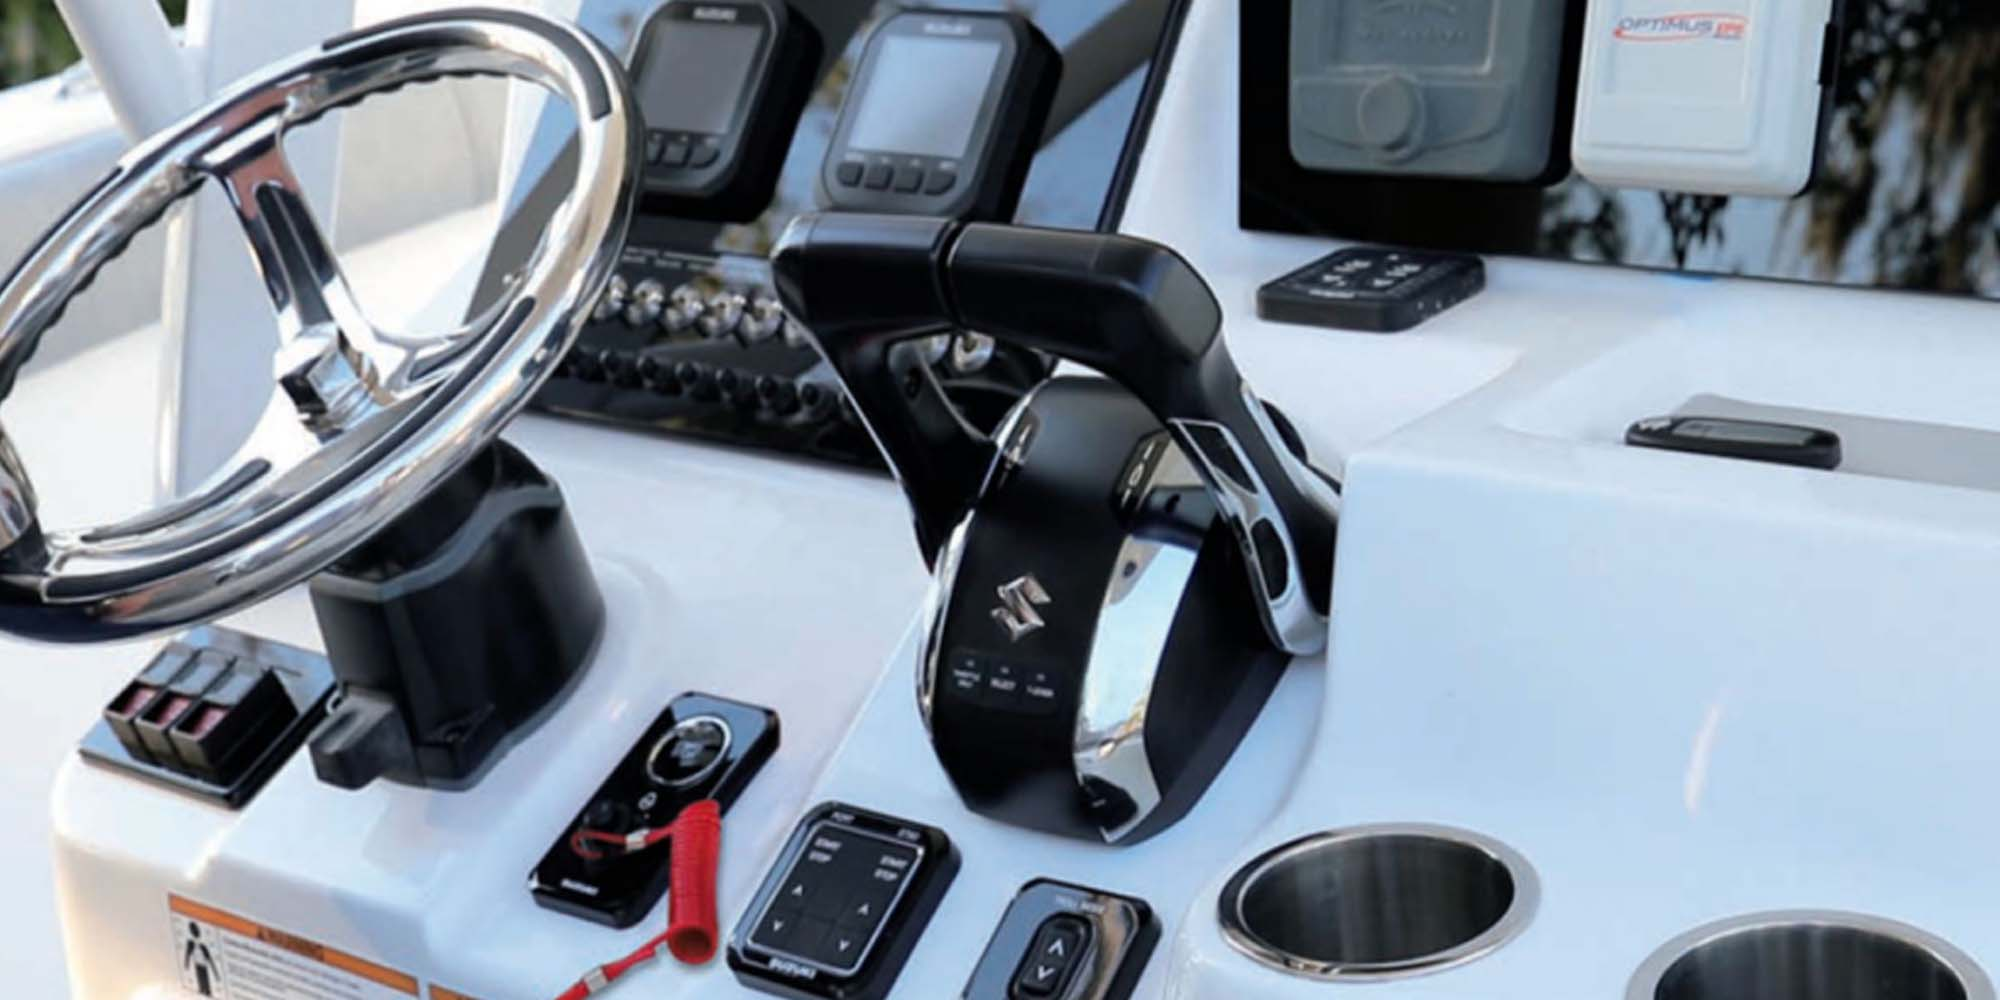 Suzuki Announces New Marine Accessories at Cannes Yachting Festival